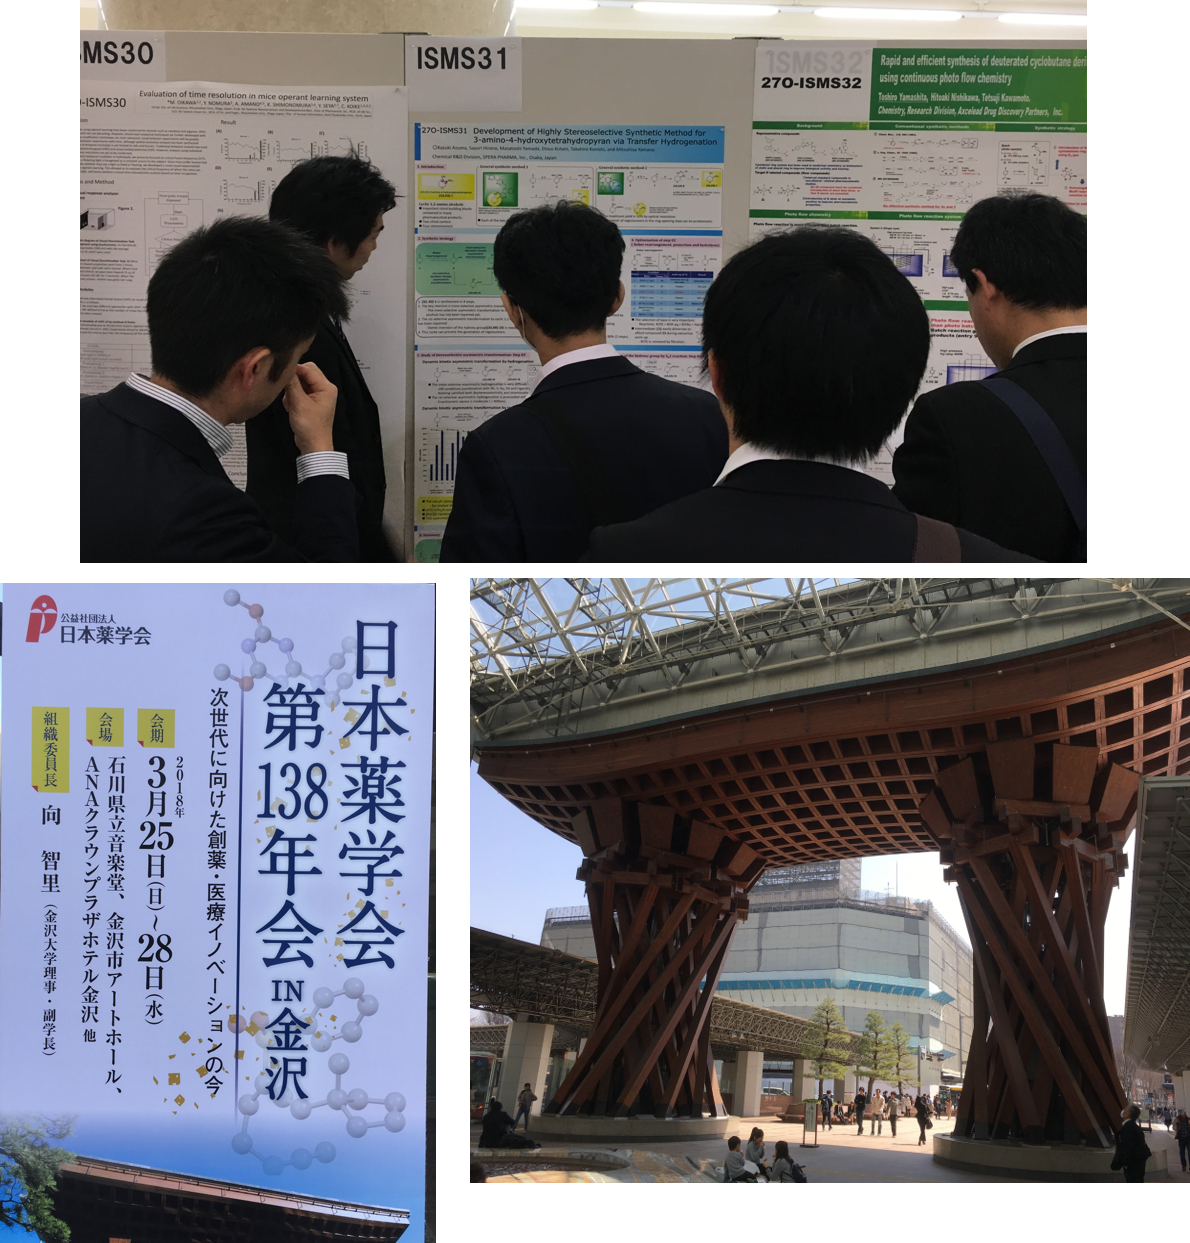 4th International Symposium for Medicinal Sciences (ISMS)でポスター発表を行いました